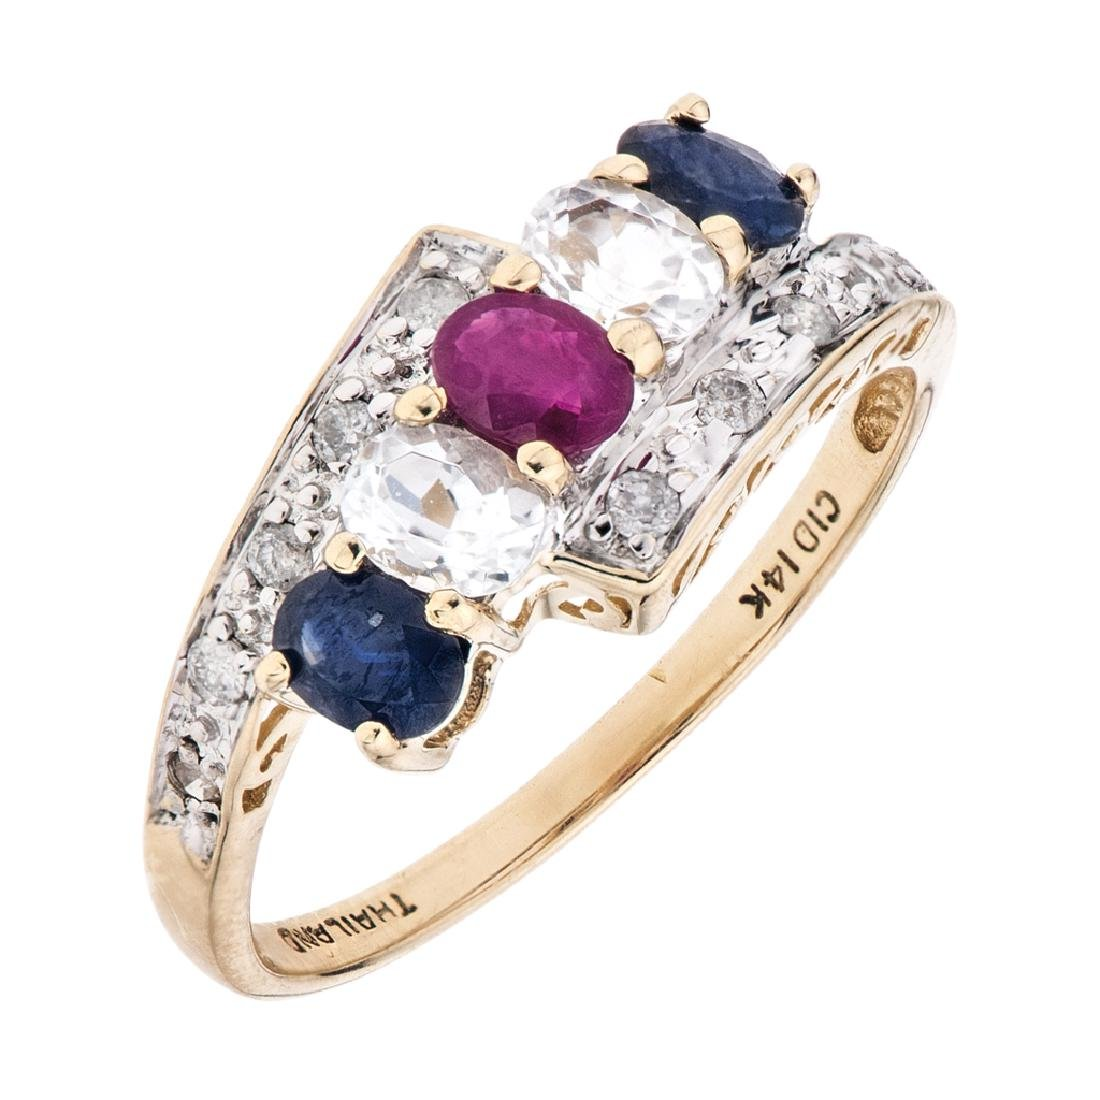 A 14K yellow gold ring with ruby, sapphires, quartz and